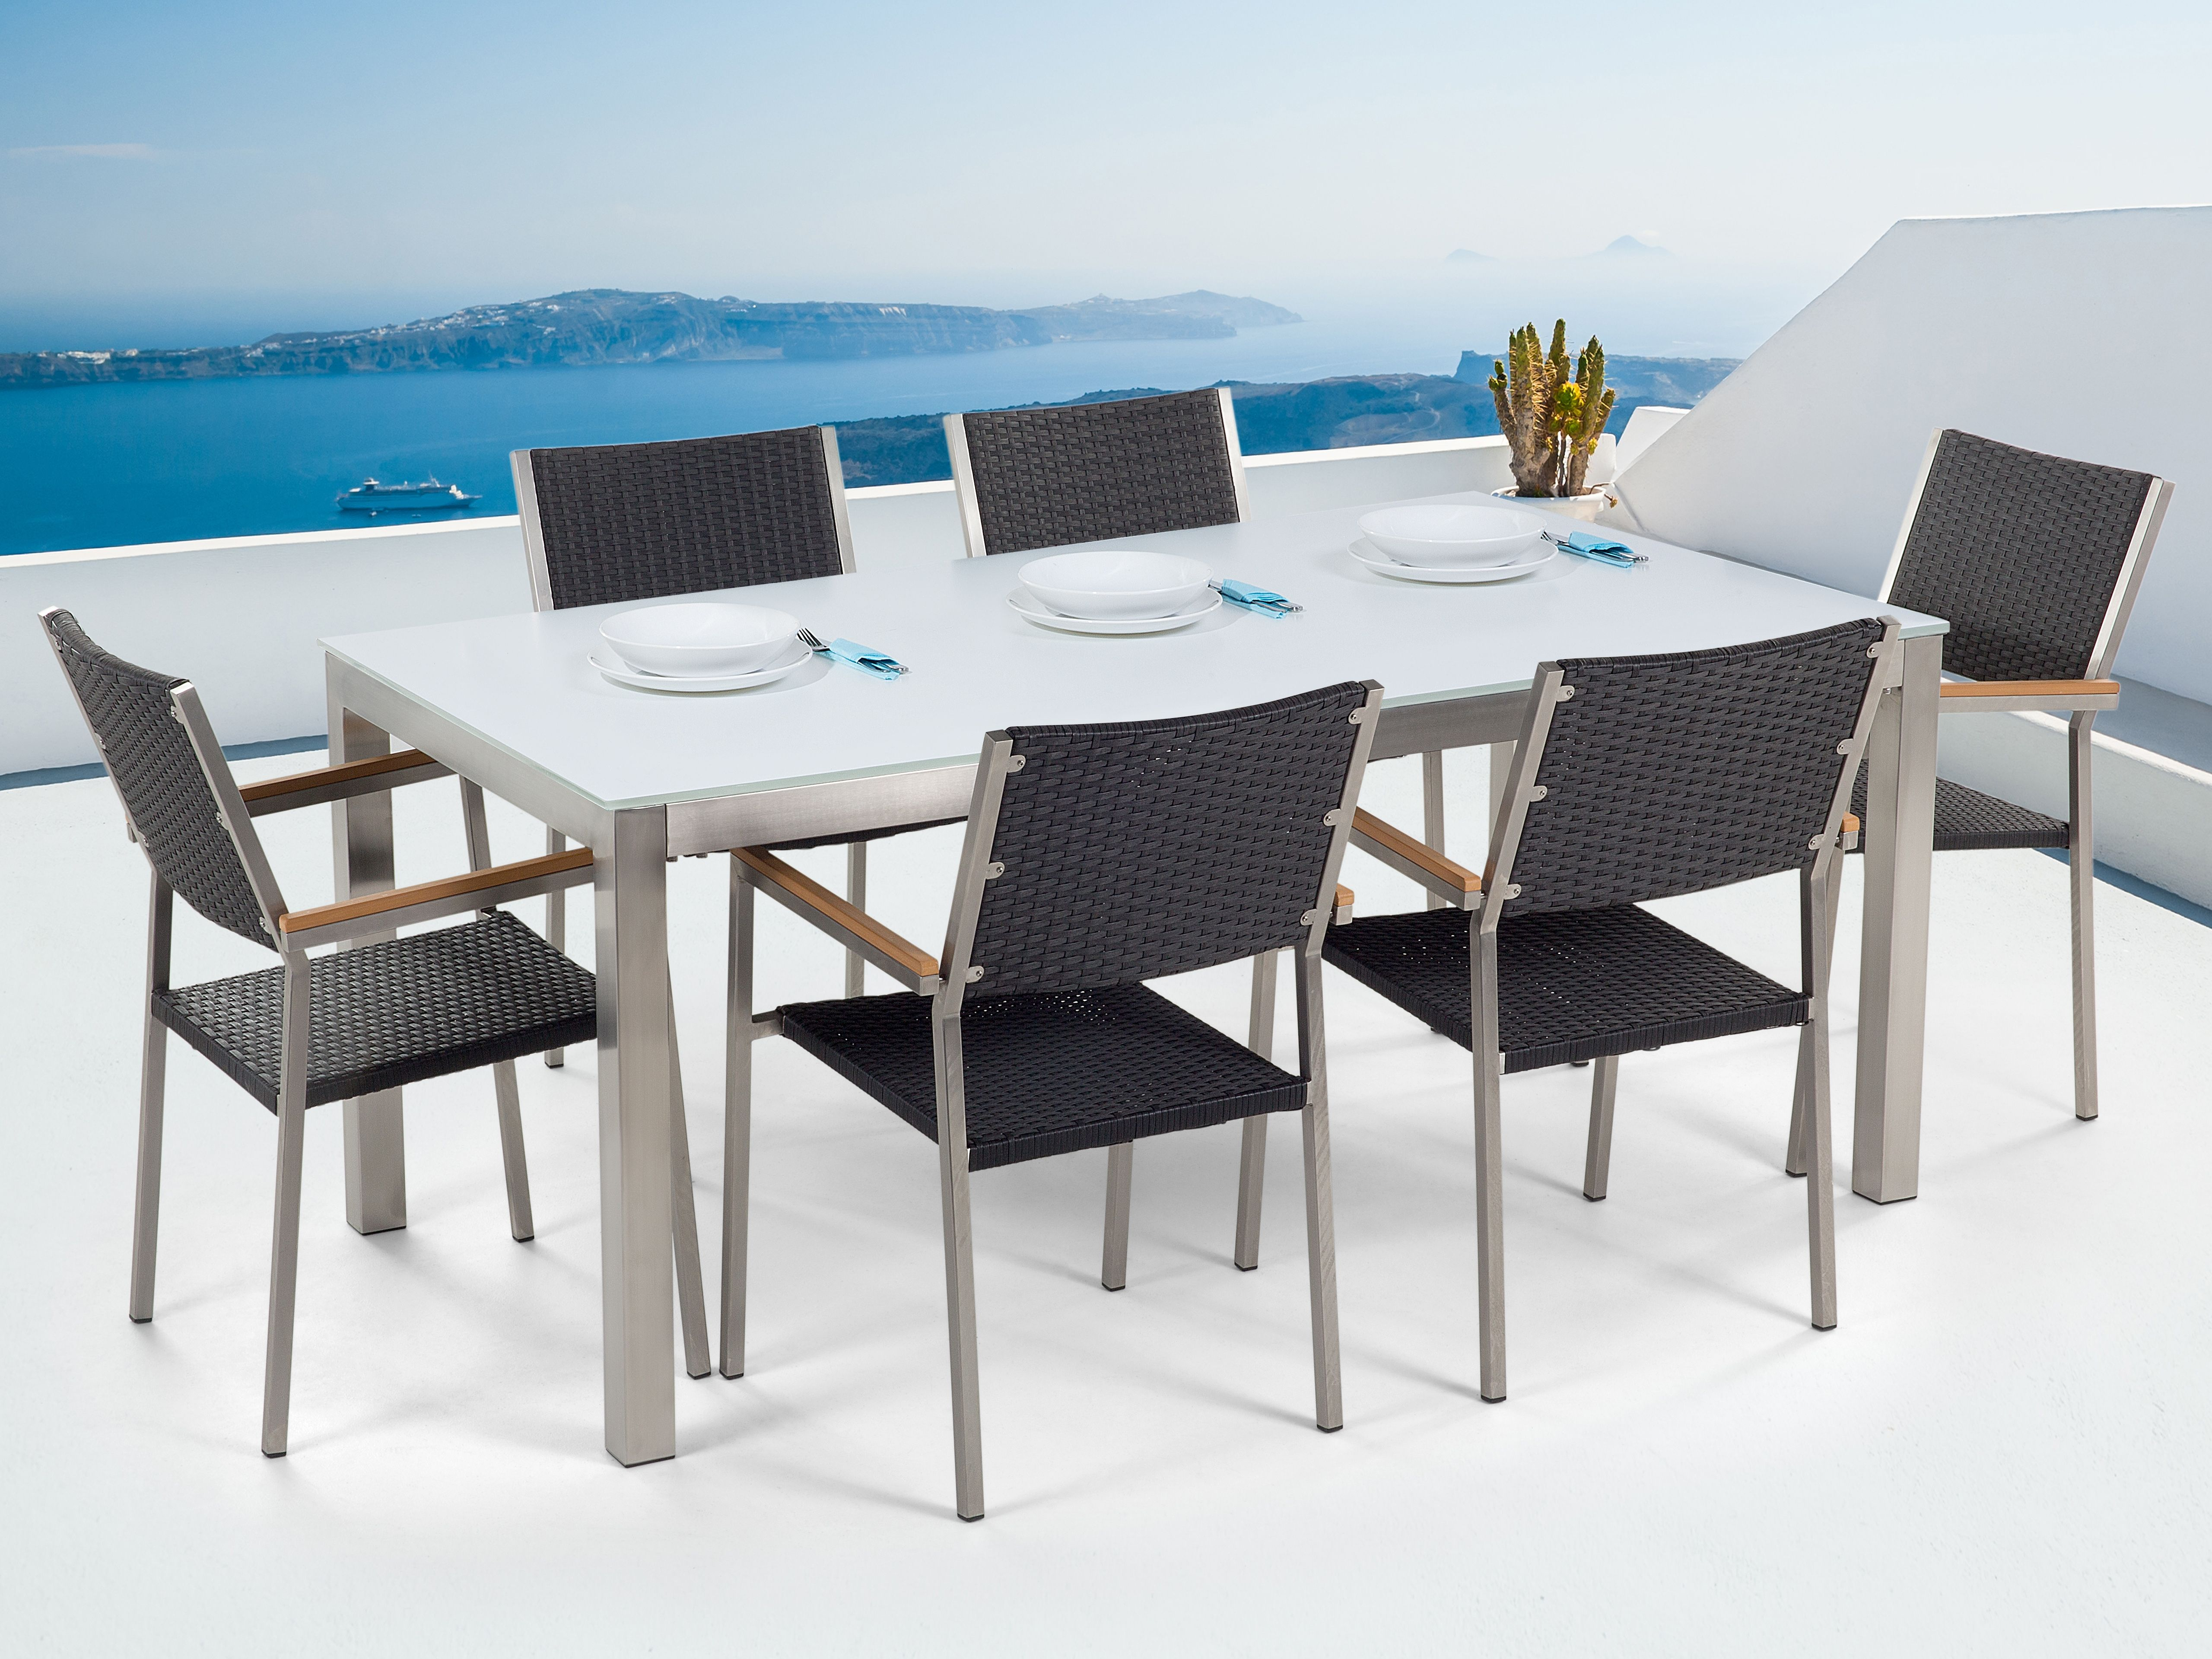 Awesome 10 Pics Garden Table And Chairs Set Rattan And Description Furniture Garden Table And Chairs Outdoor Furniture